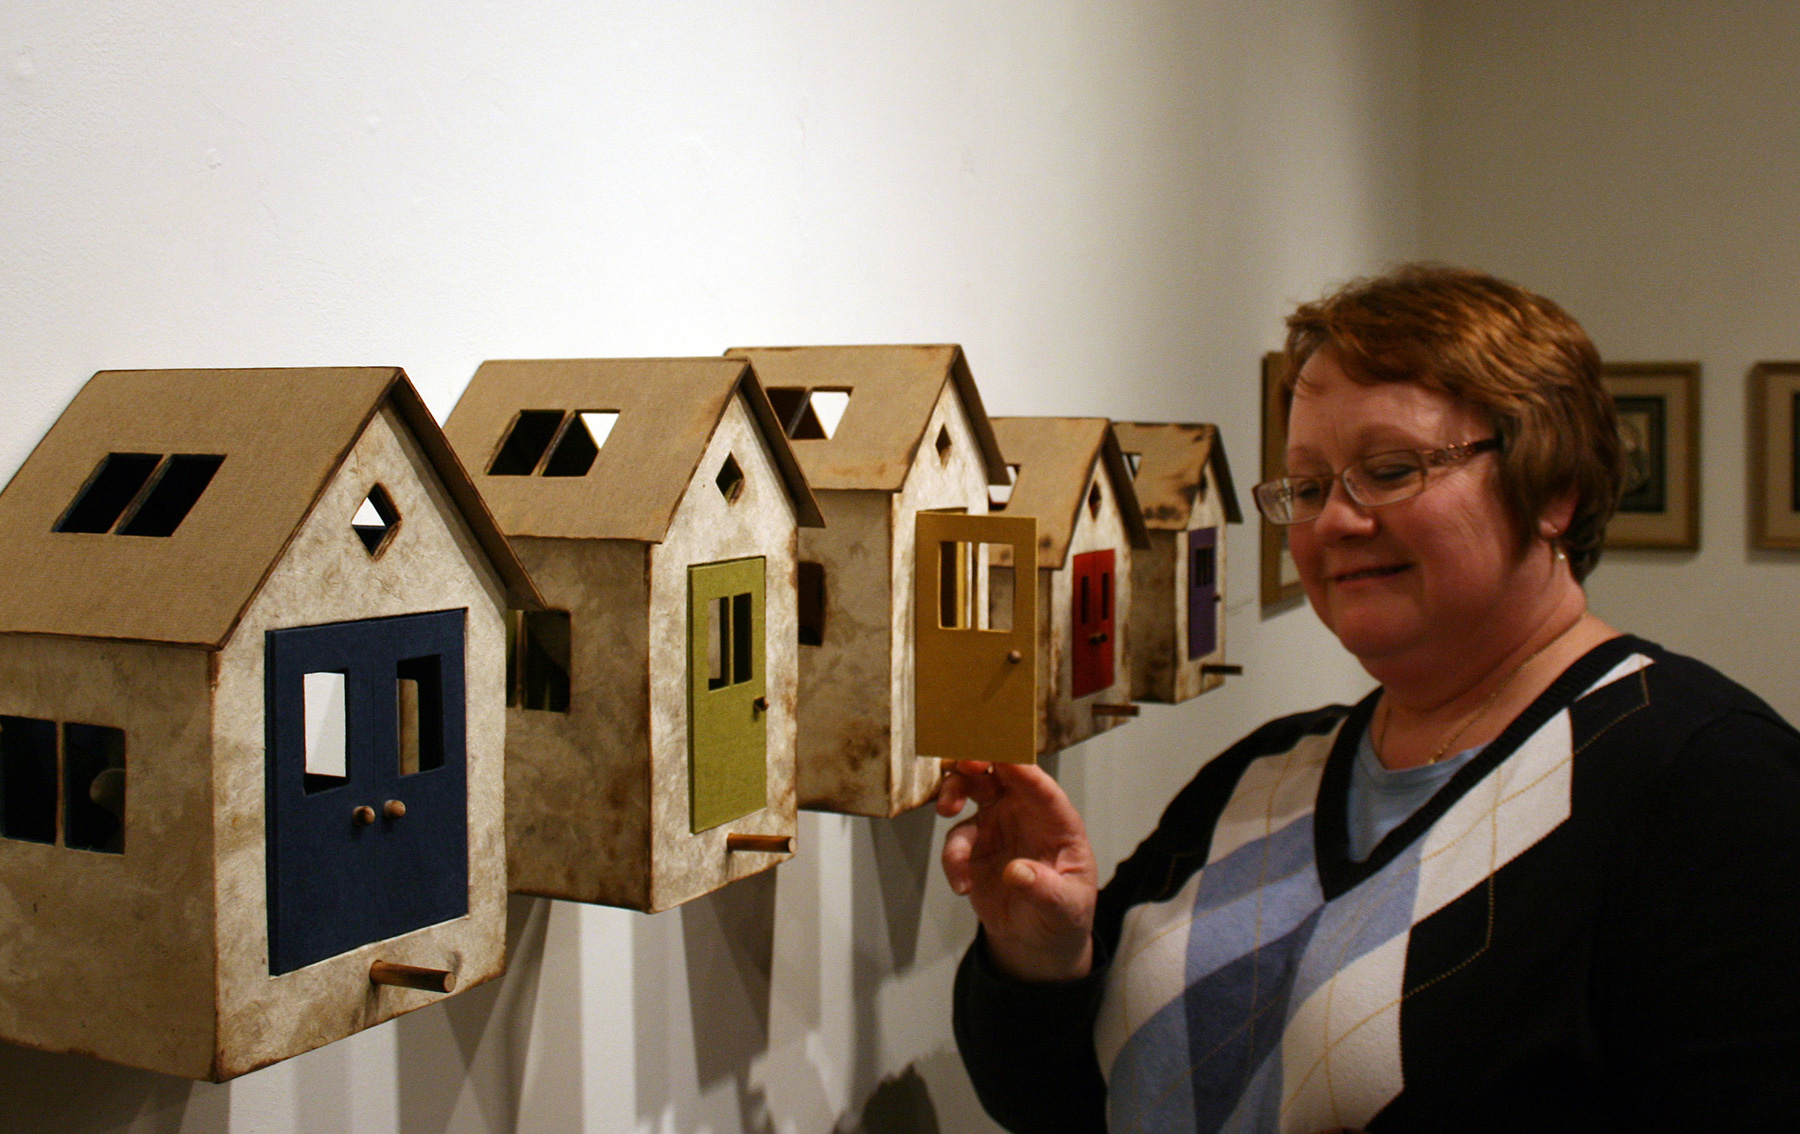 Bird-Houses-Installation-View-11_BC-with-Viewer1.jpg